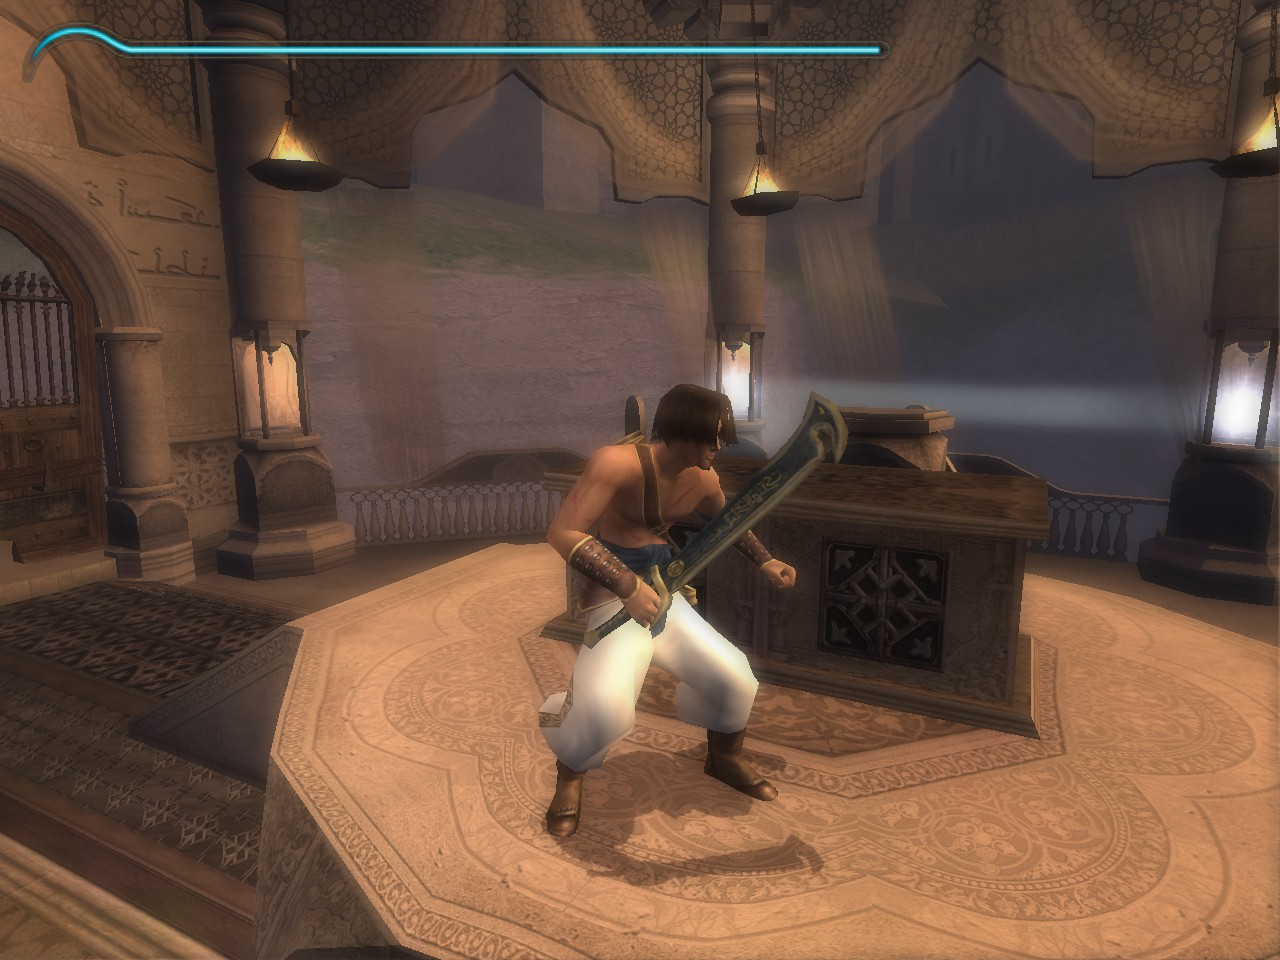 POP 2014-05-23 14-42-36-26.jpg - Prince of Persia: The Sands of Time